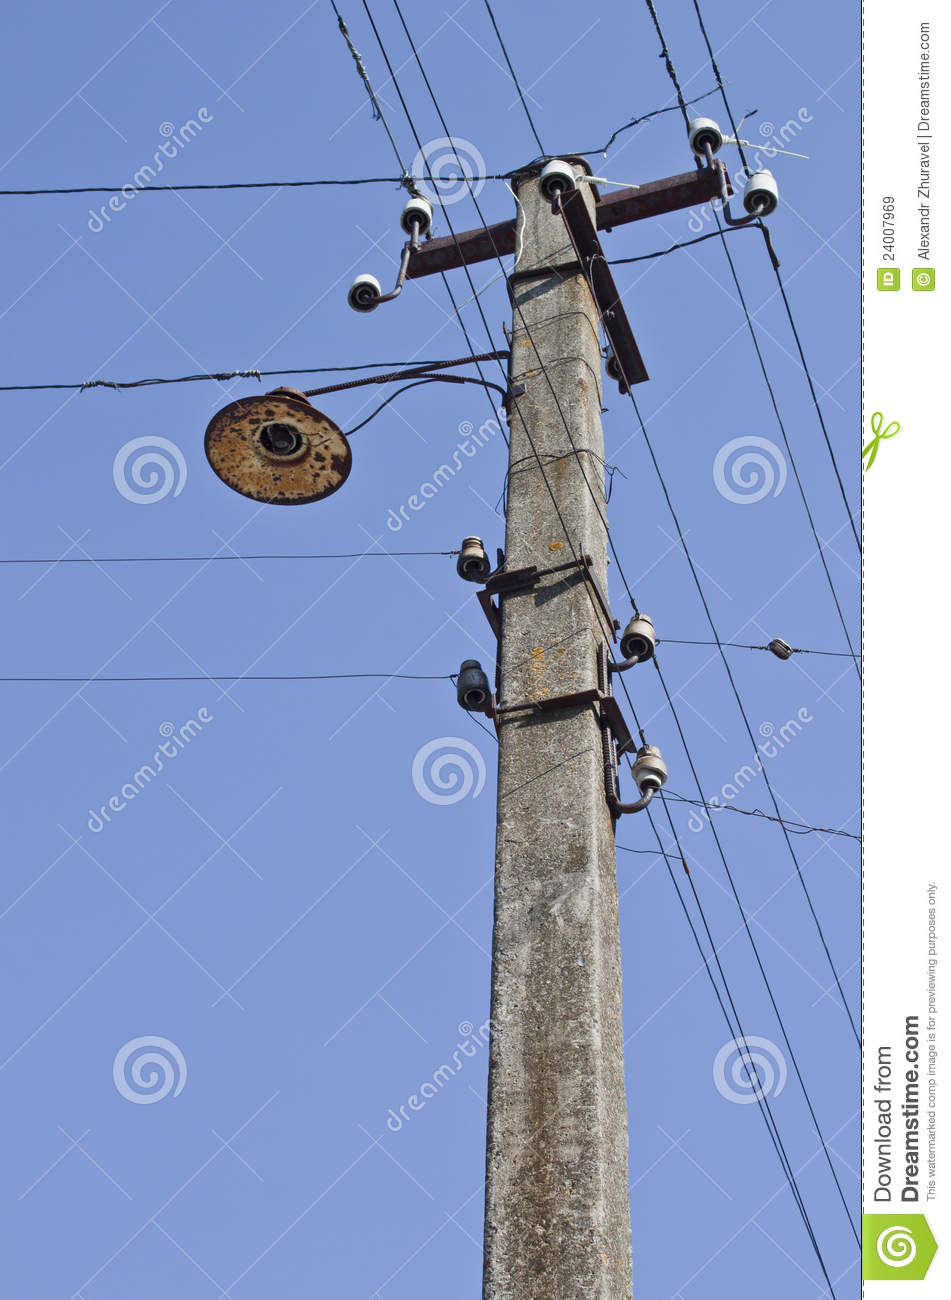 electrical post power line cables stock illustrations 6 electrical